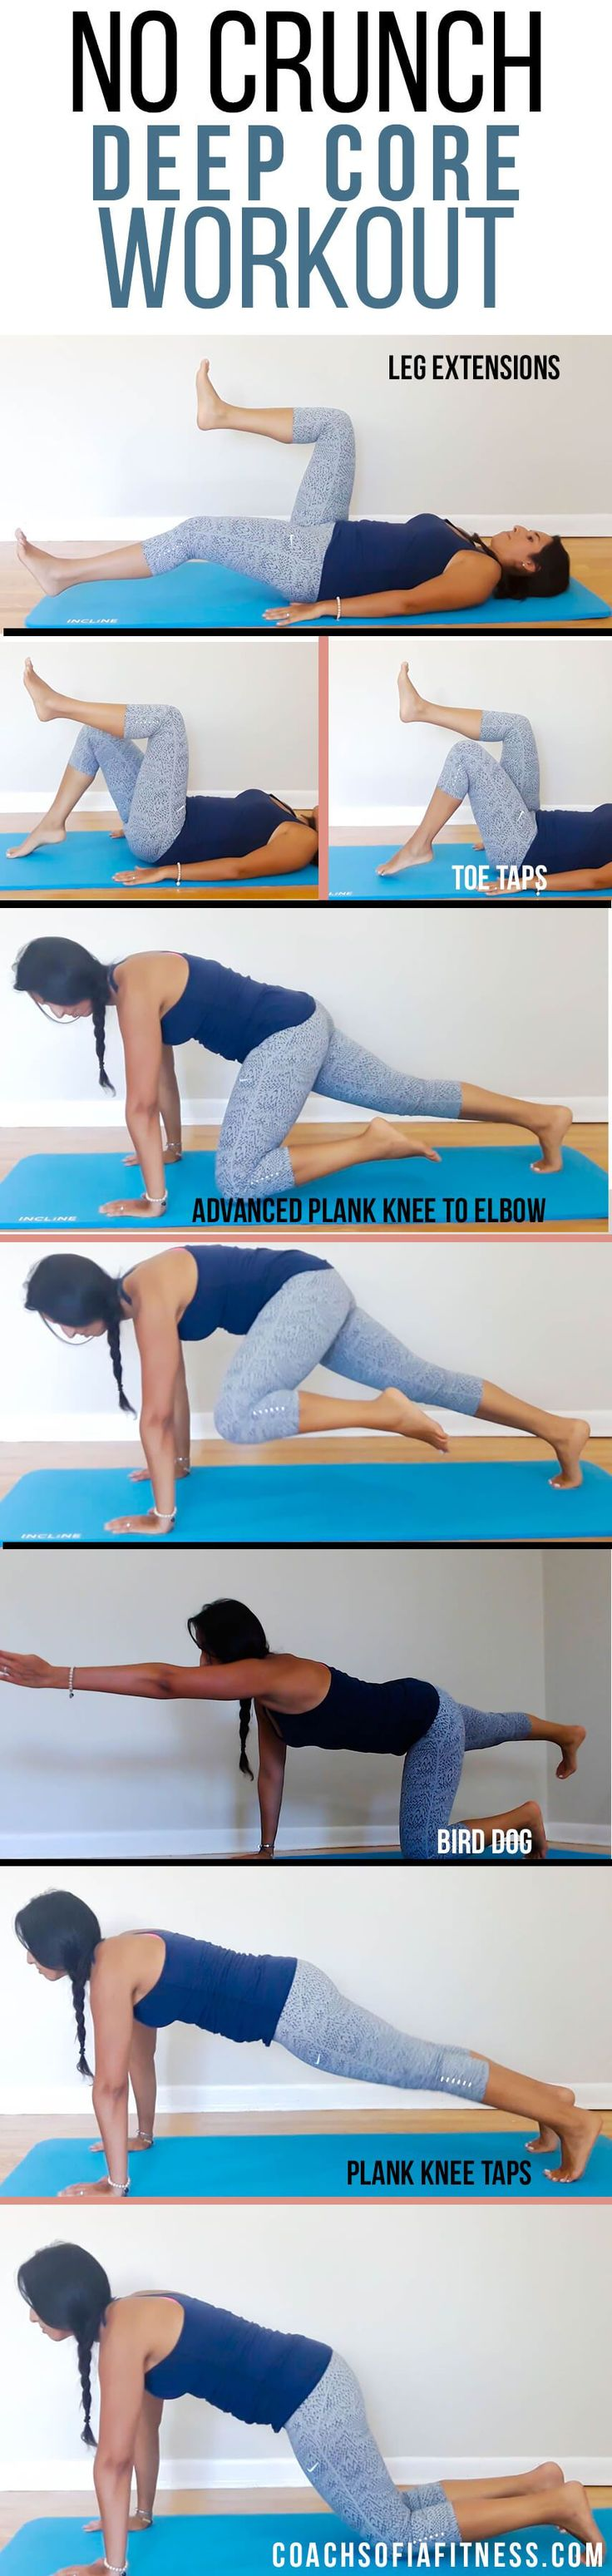 Video showing amazing No crunch core exercises that will target your inner deep abdominal muscles that needs strengthening to alleviate lower back pain, and pelvis instability. Your inner core is the spine safety belt and without it, we won't be able to a